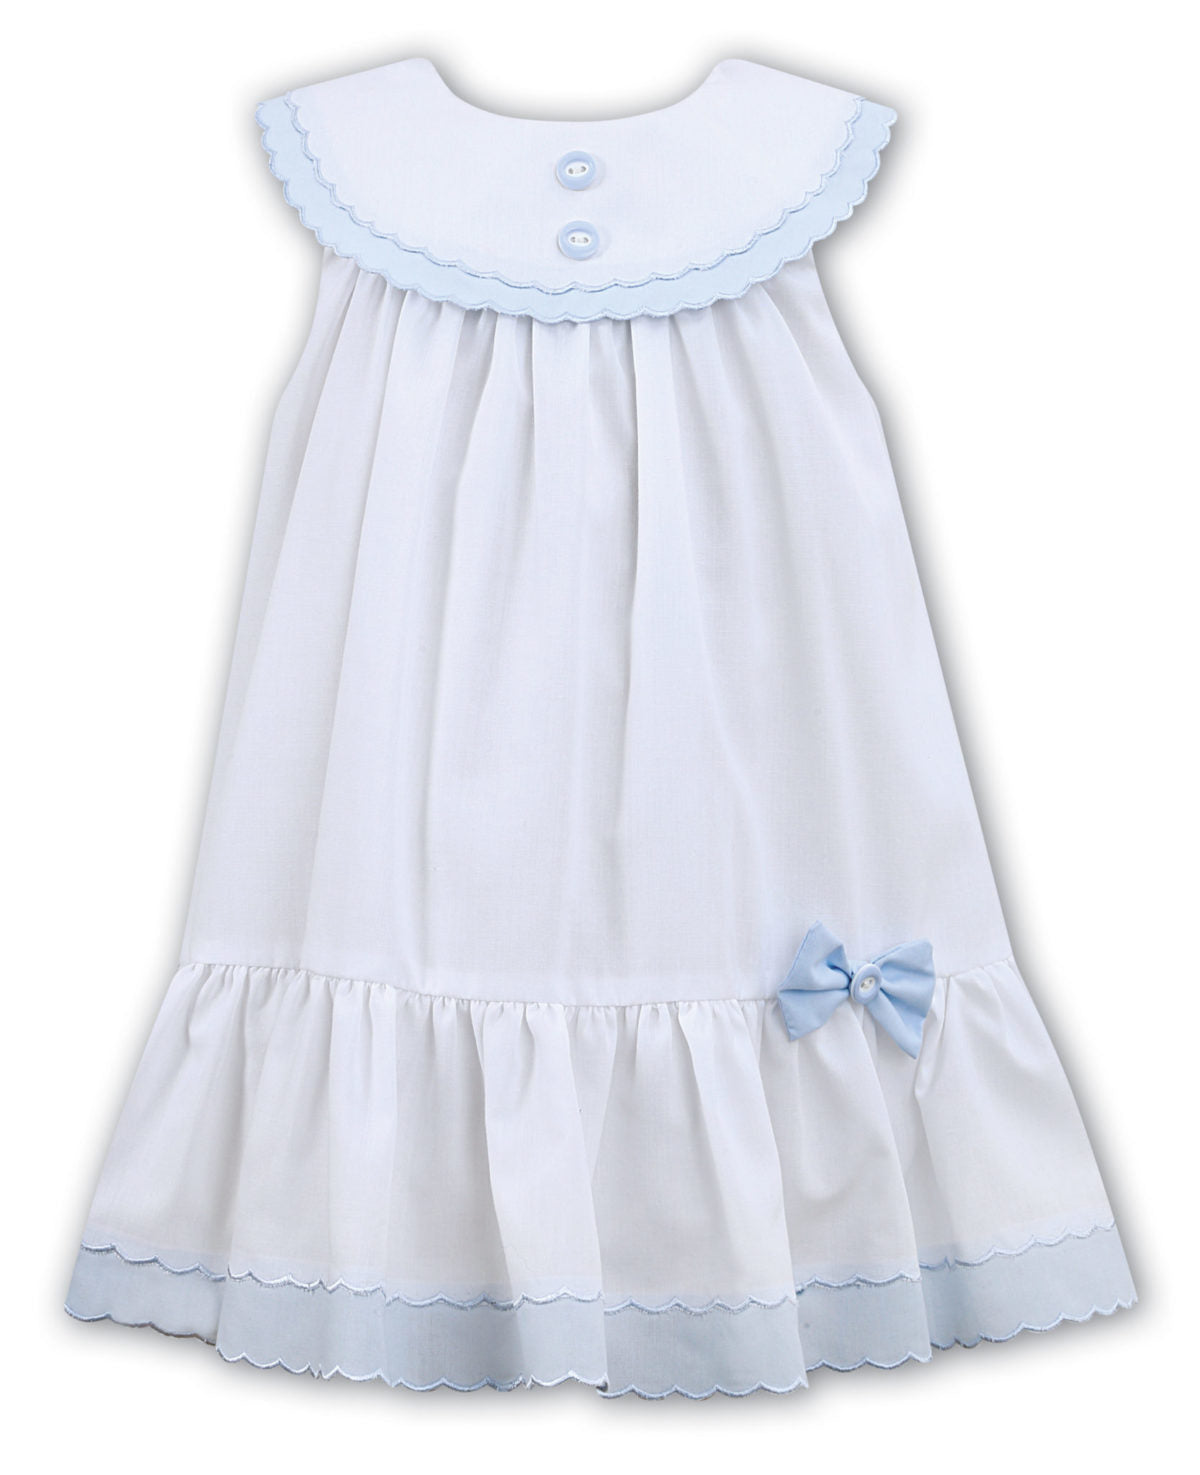 Baby Girls White & Blue Dress